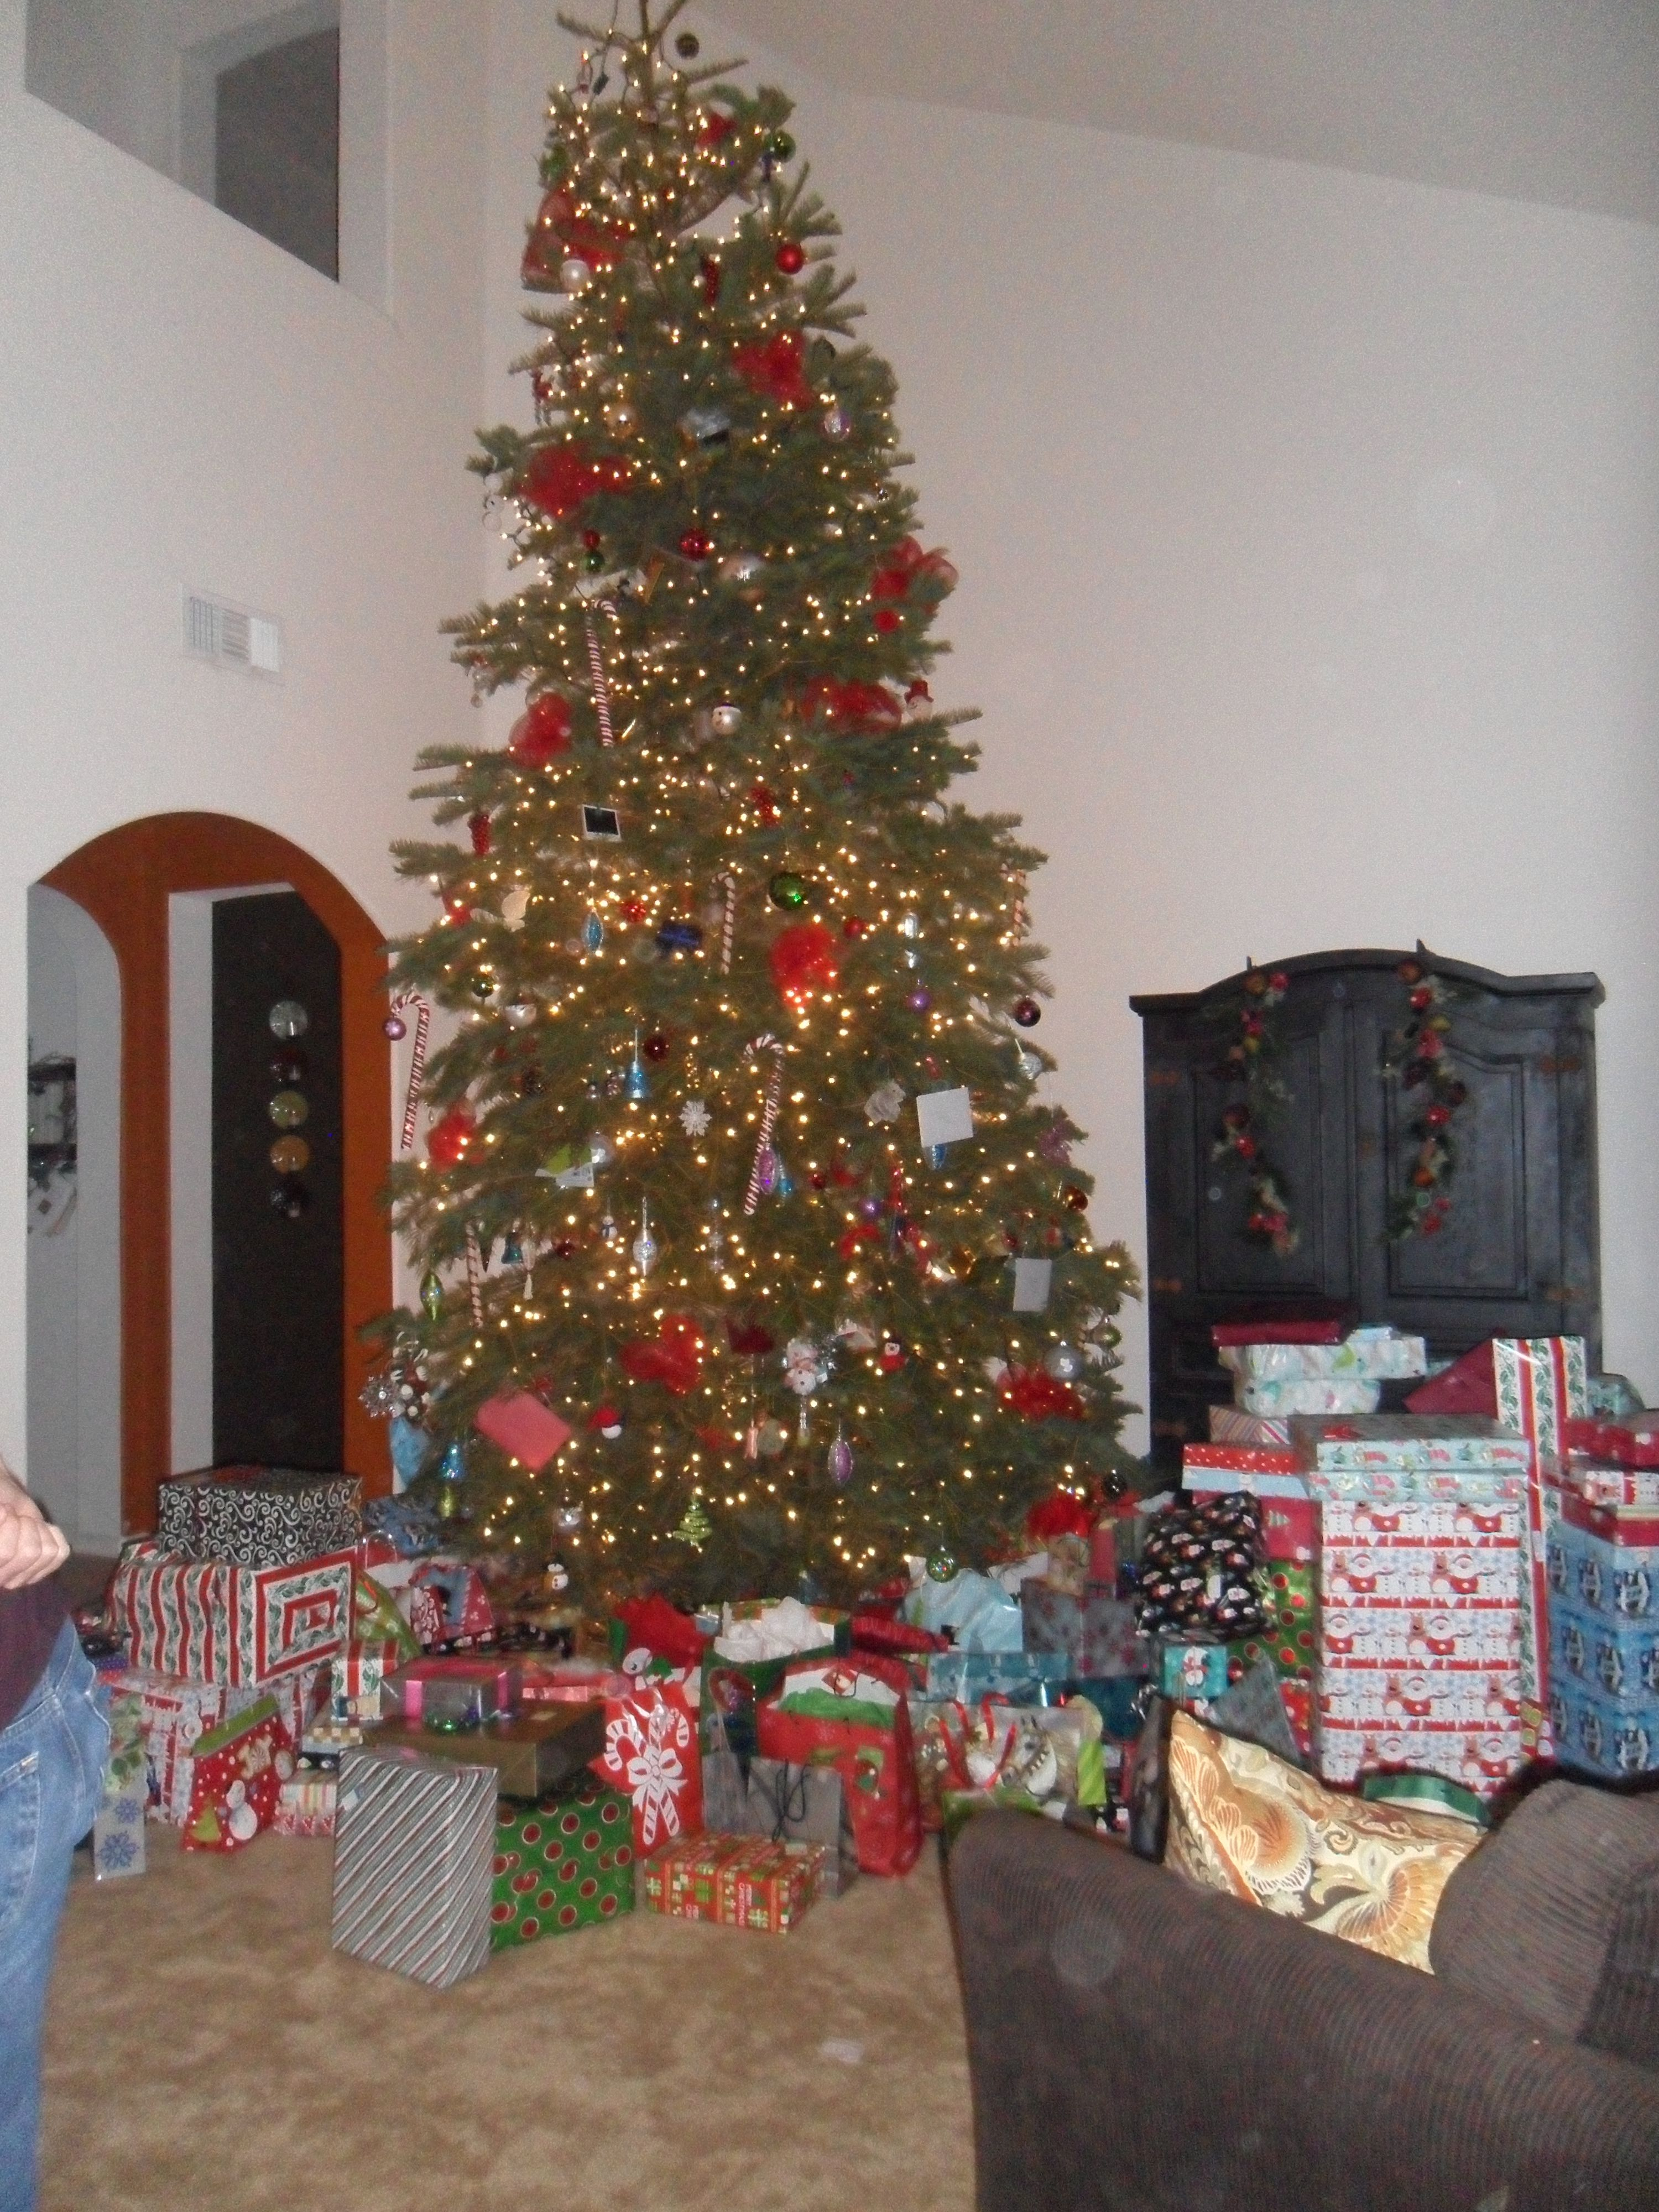 Our tree was so huge this year but what cracks me up is all the presents who has this many presents under one tree!